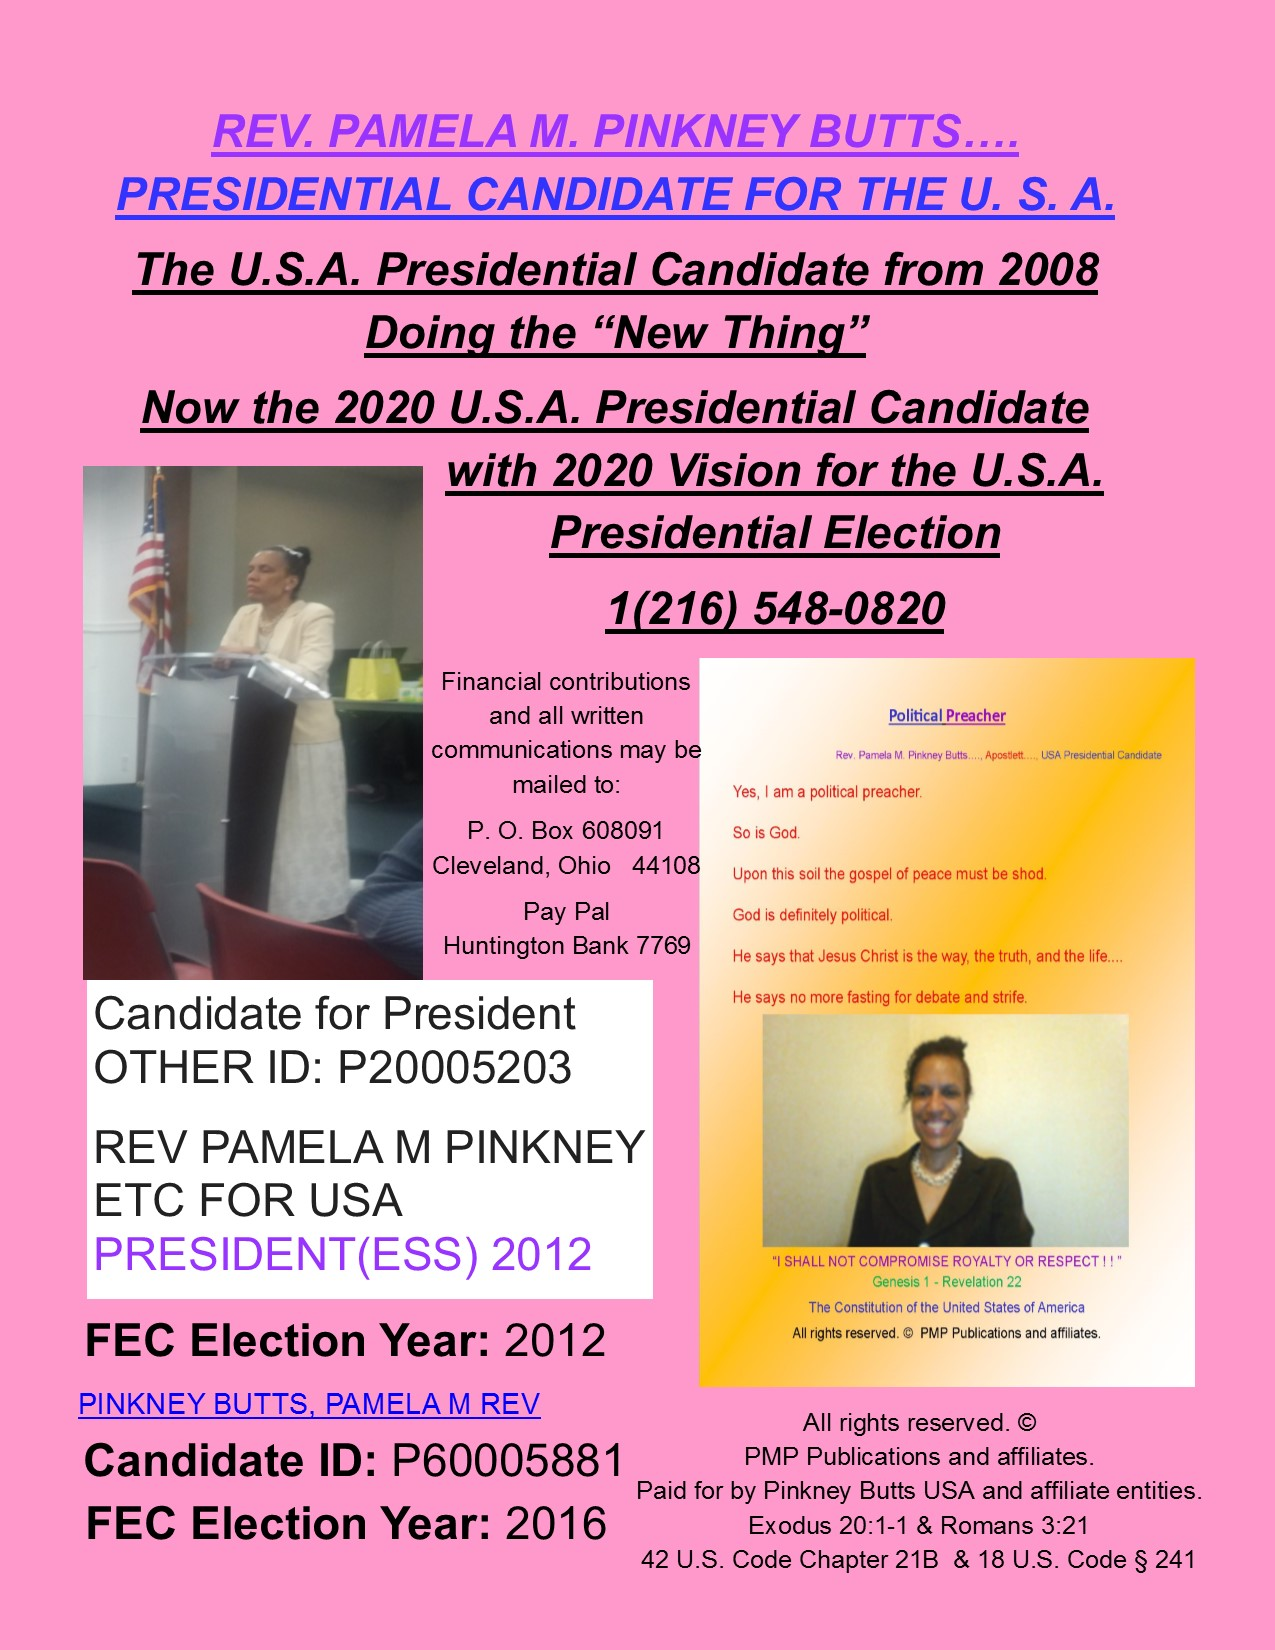 Rev. Pamela M. Pinkney Butts 2020 U.S.A. Presidential Candidate